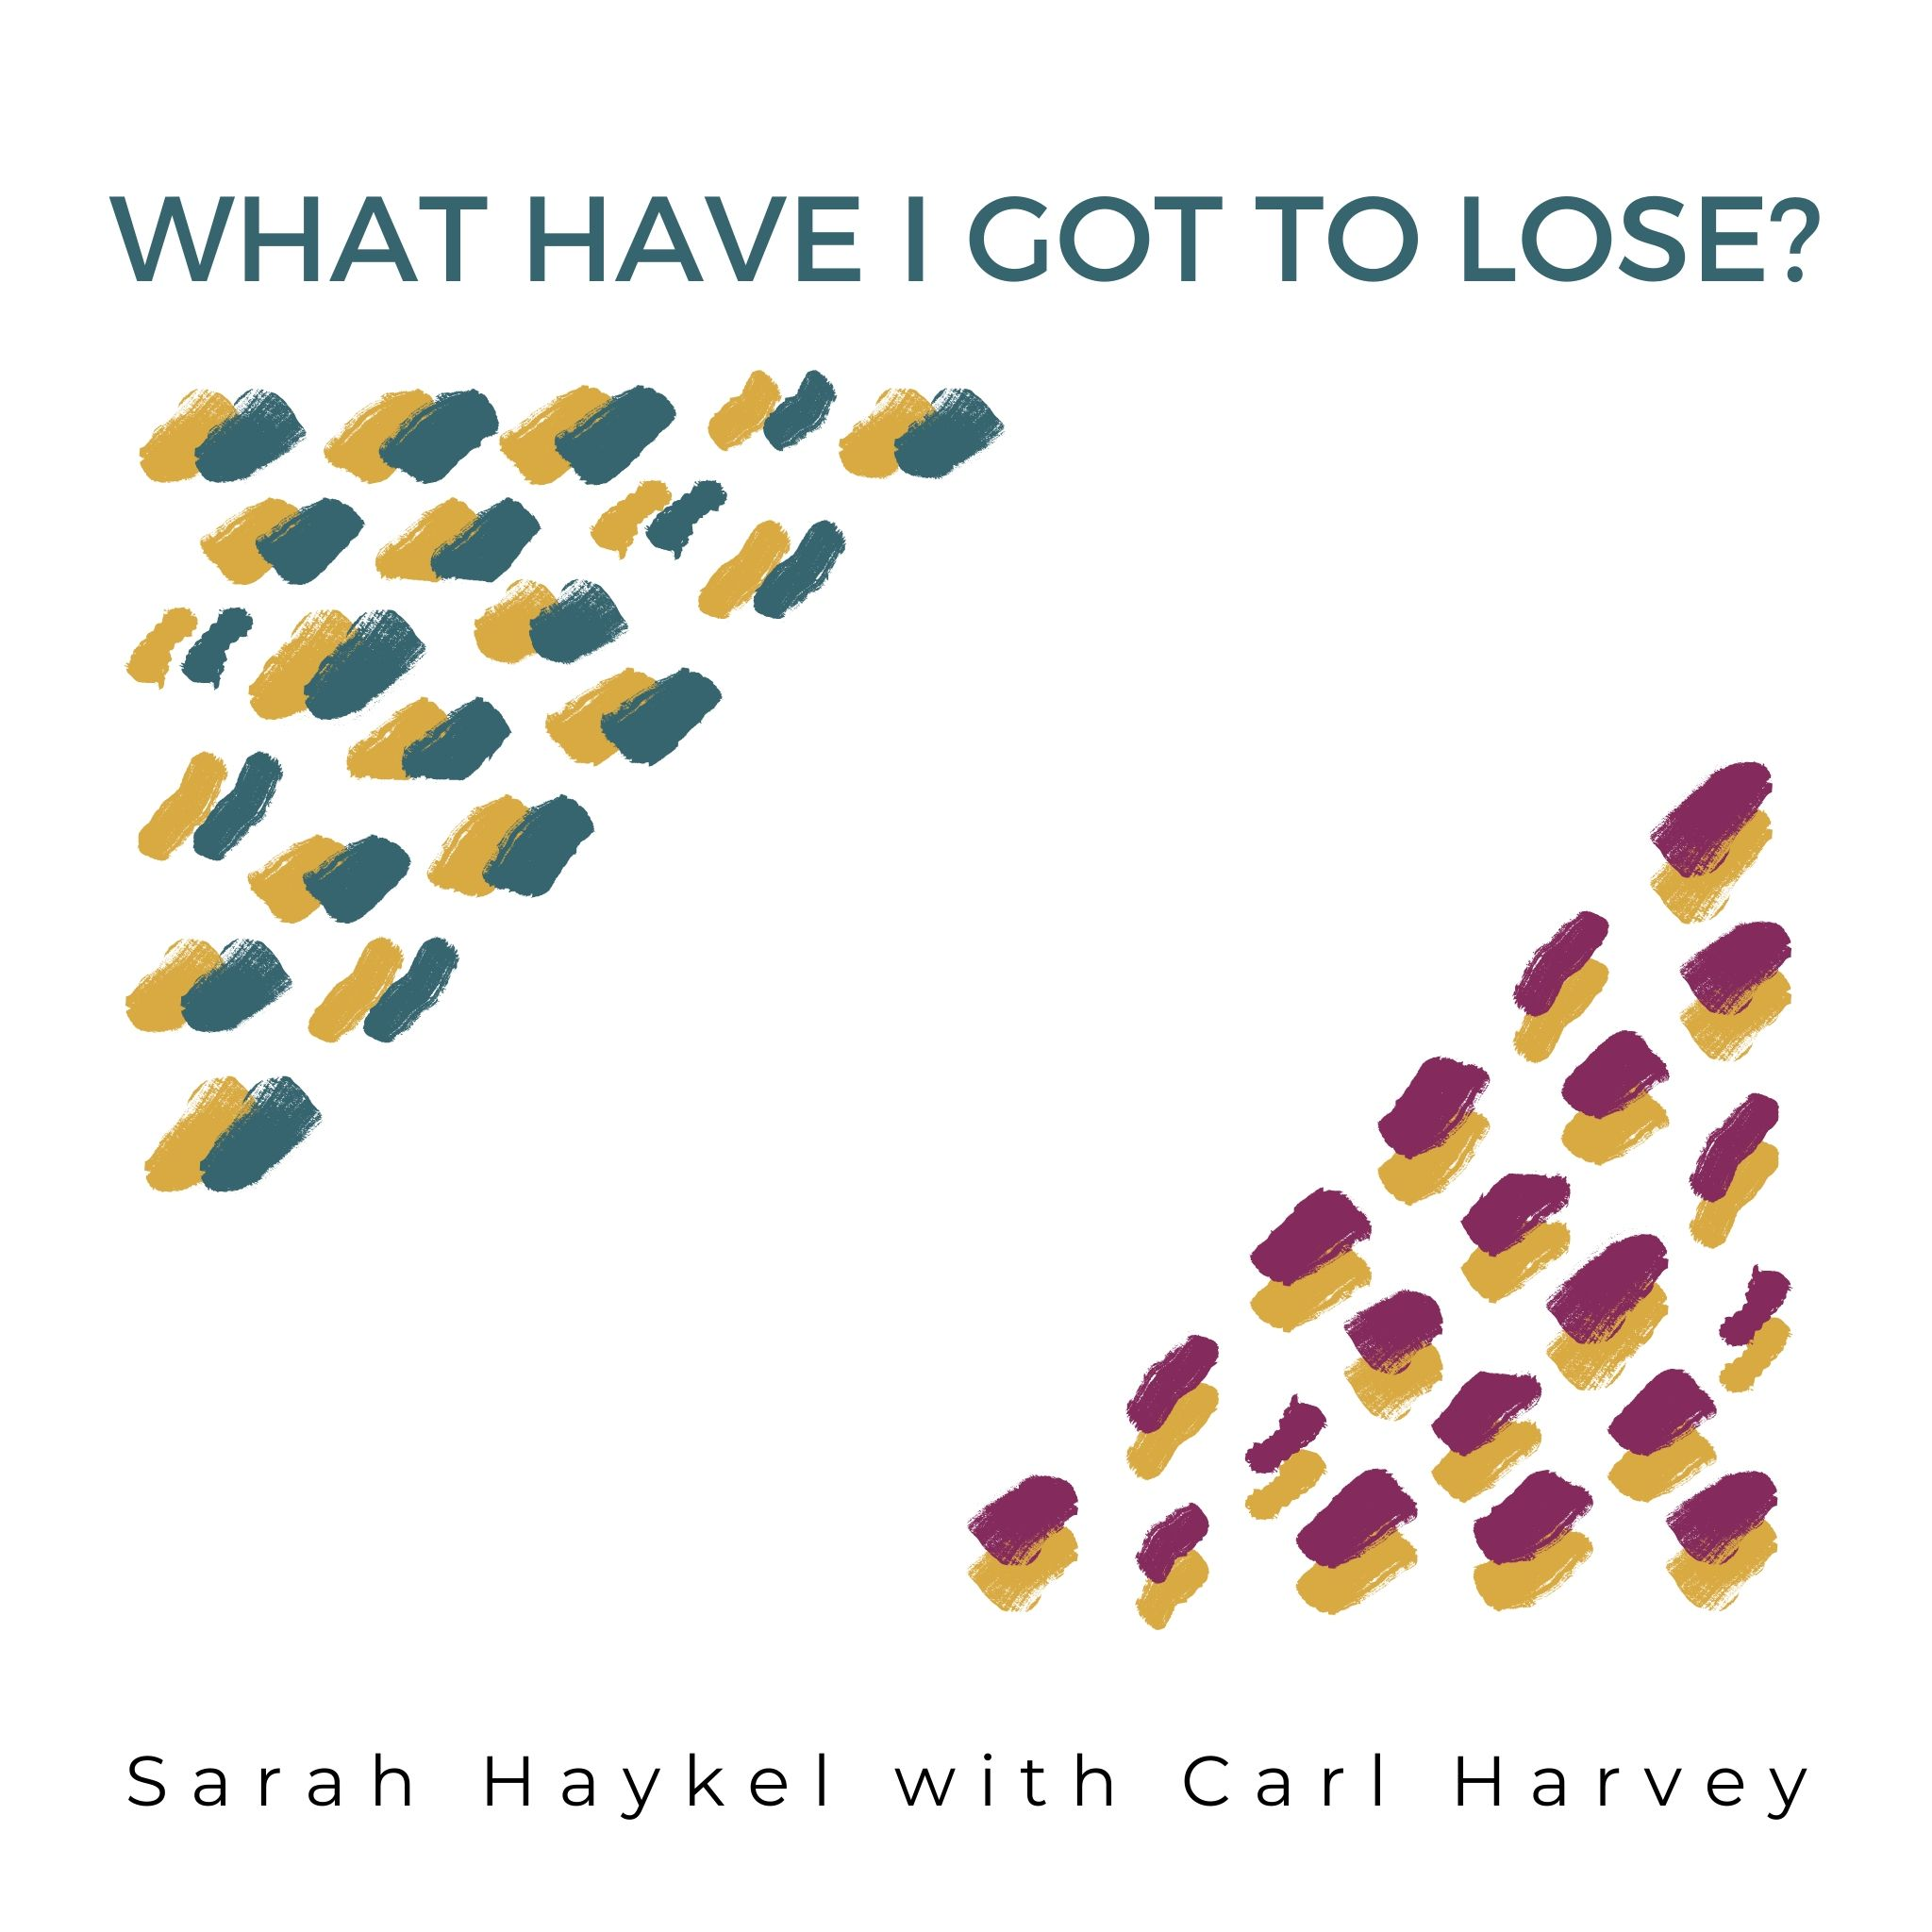 sarah_haykel_song_channel_music_what_have_i_got_to_lose